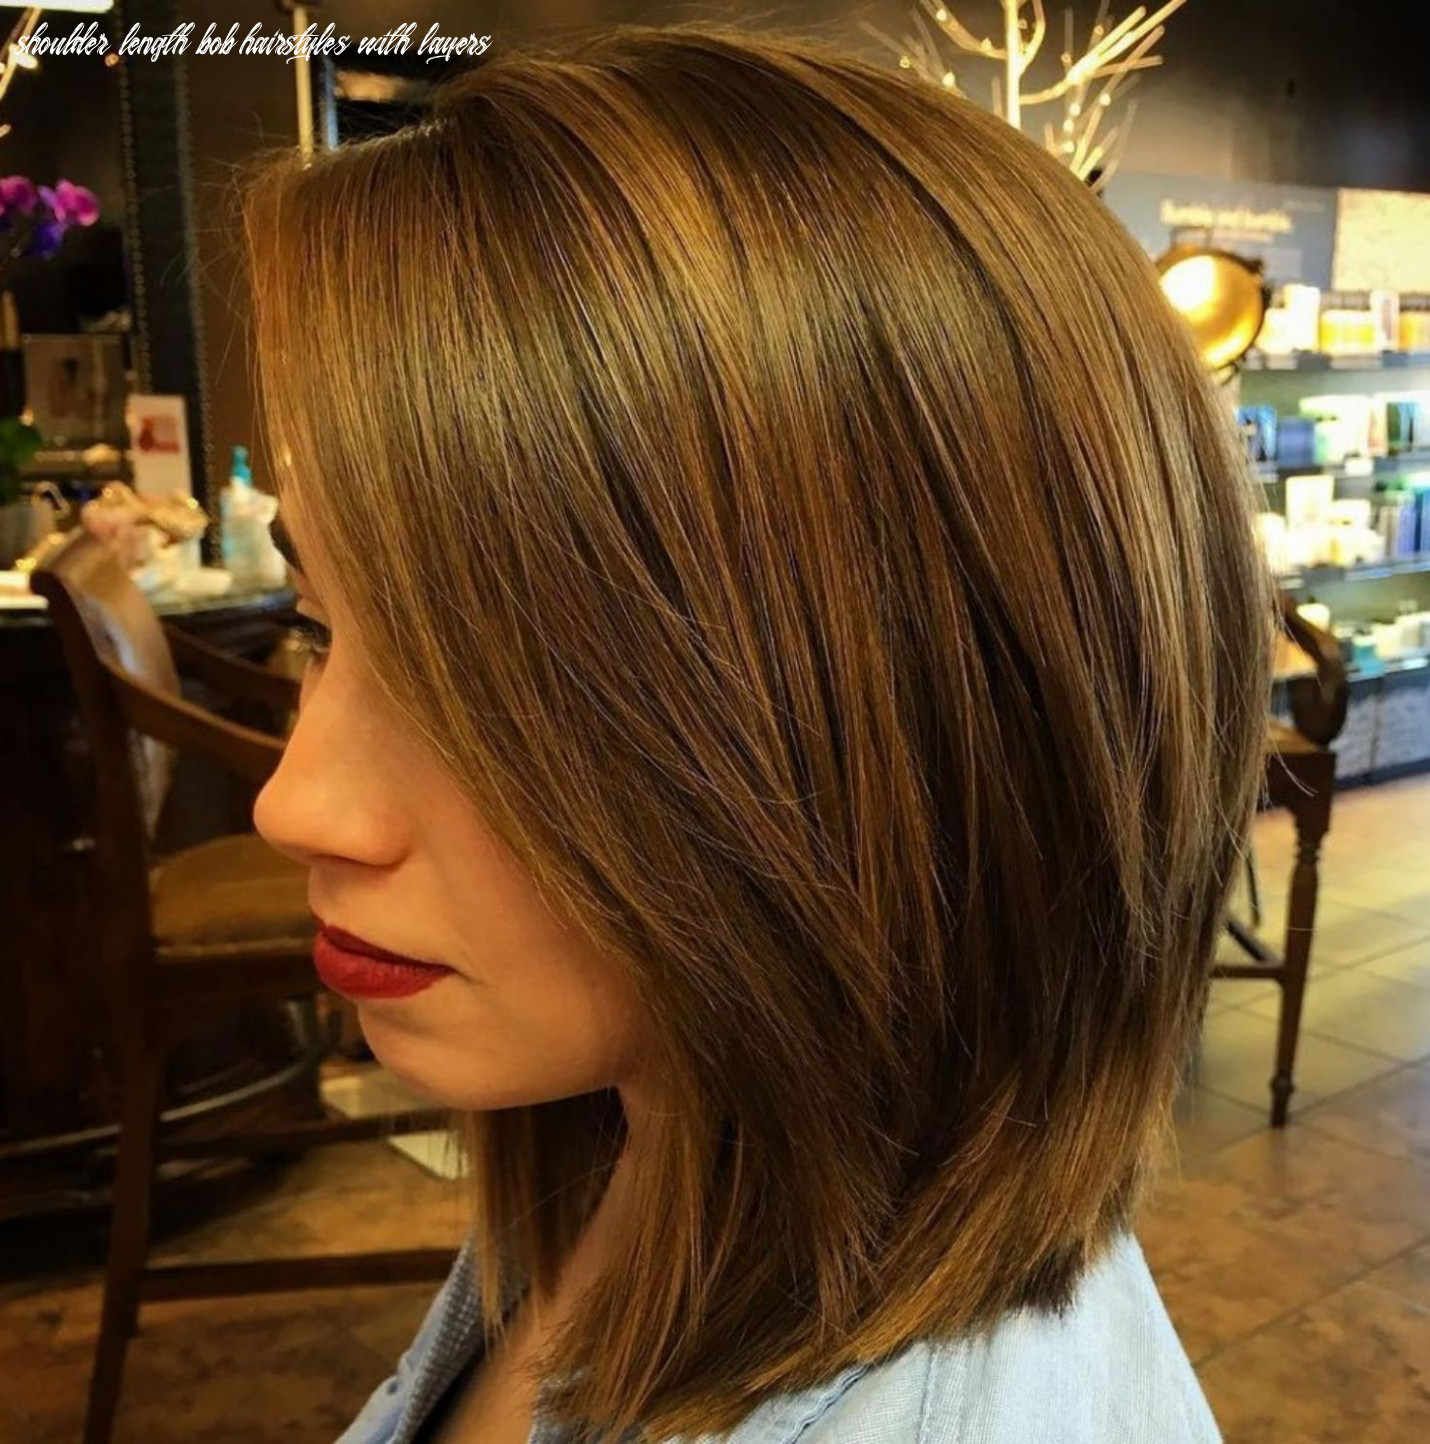 8 layered bob styles: modern haircuts with layers for any